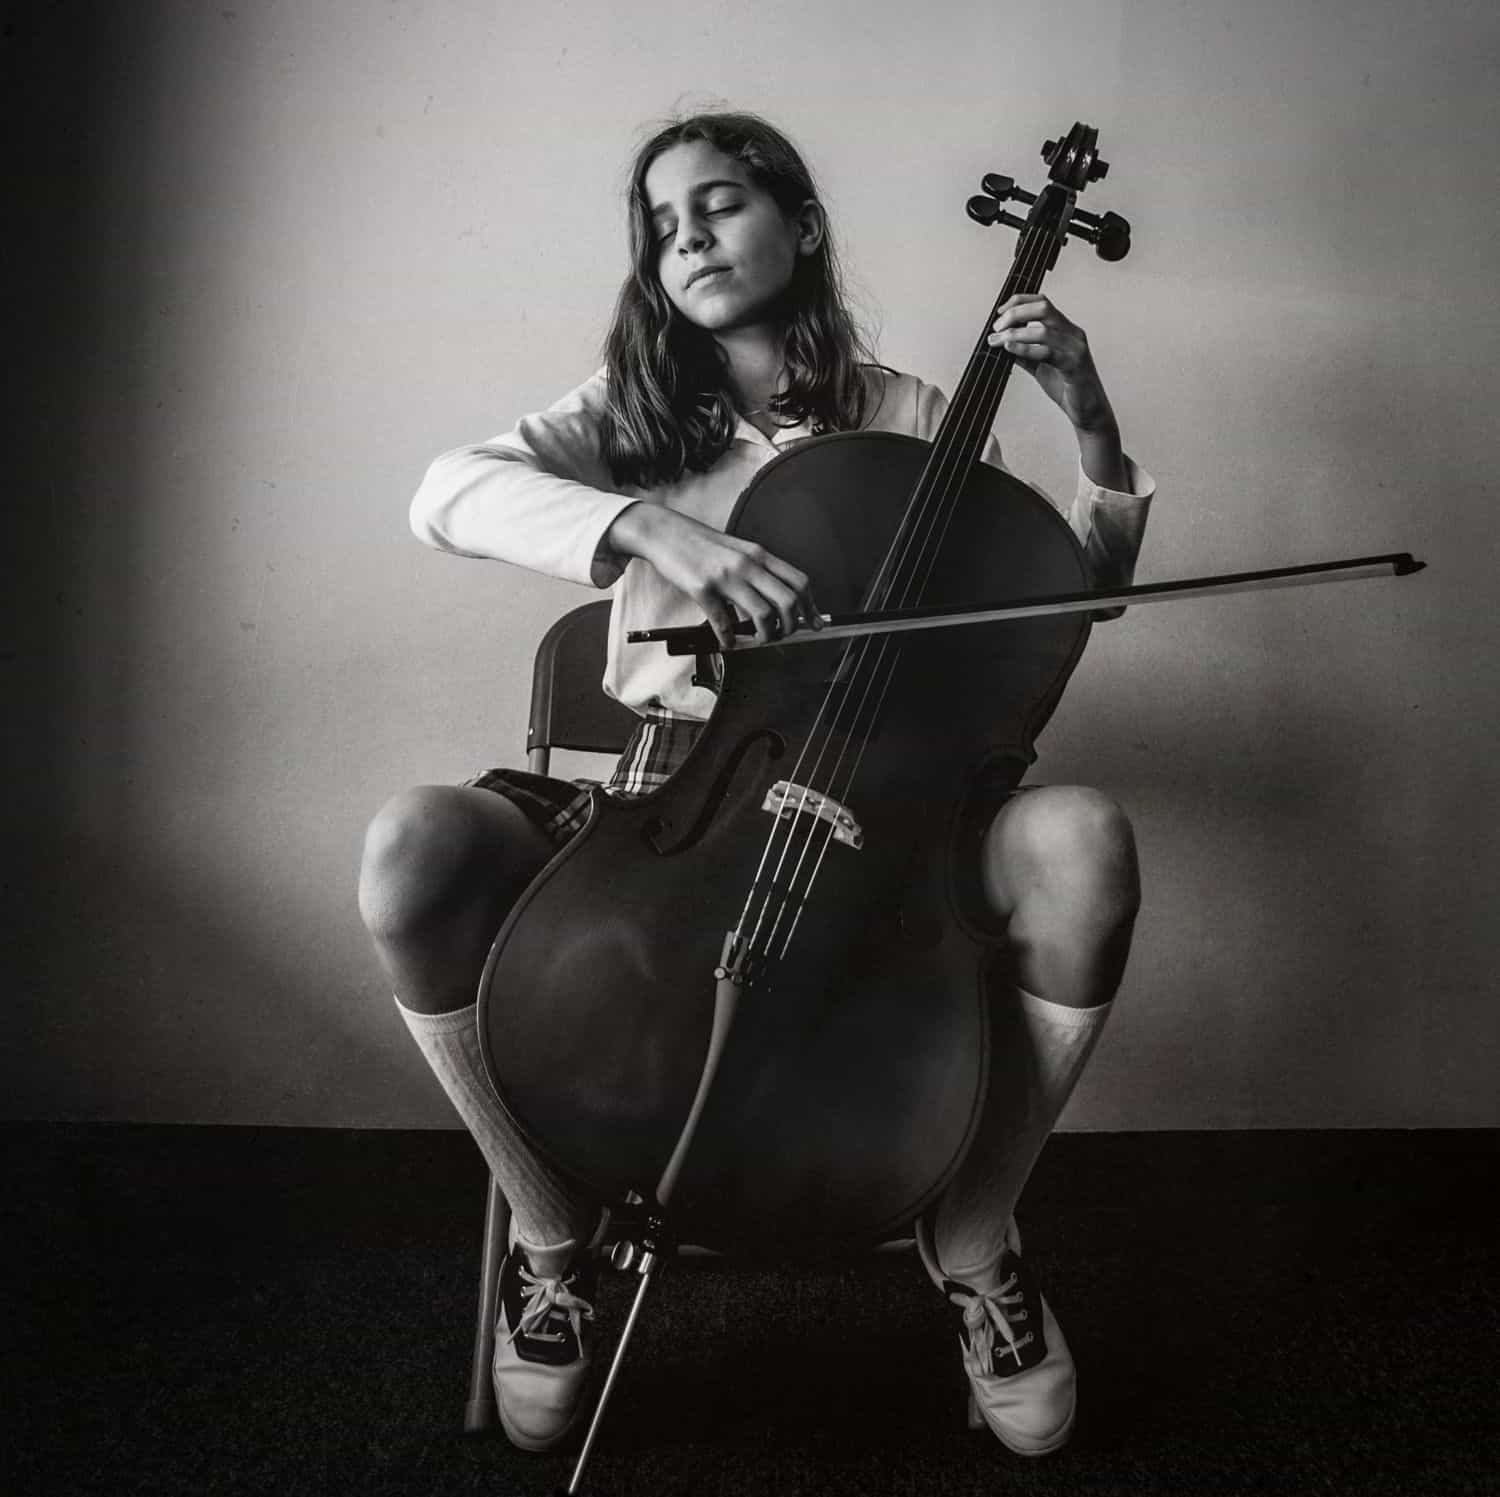 Black and white photograph of a young girl playing the cello. By Kate T. Parker for Strong is the New Pretty